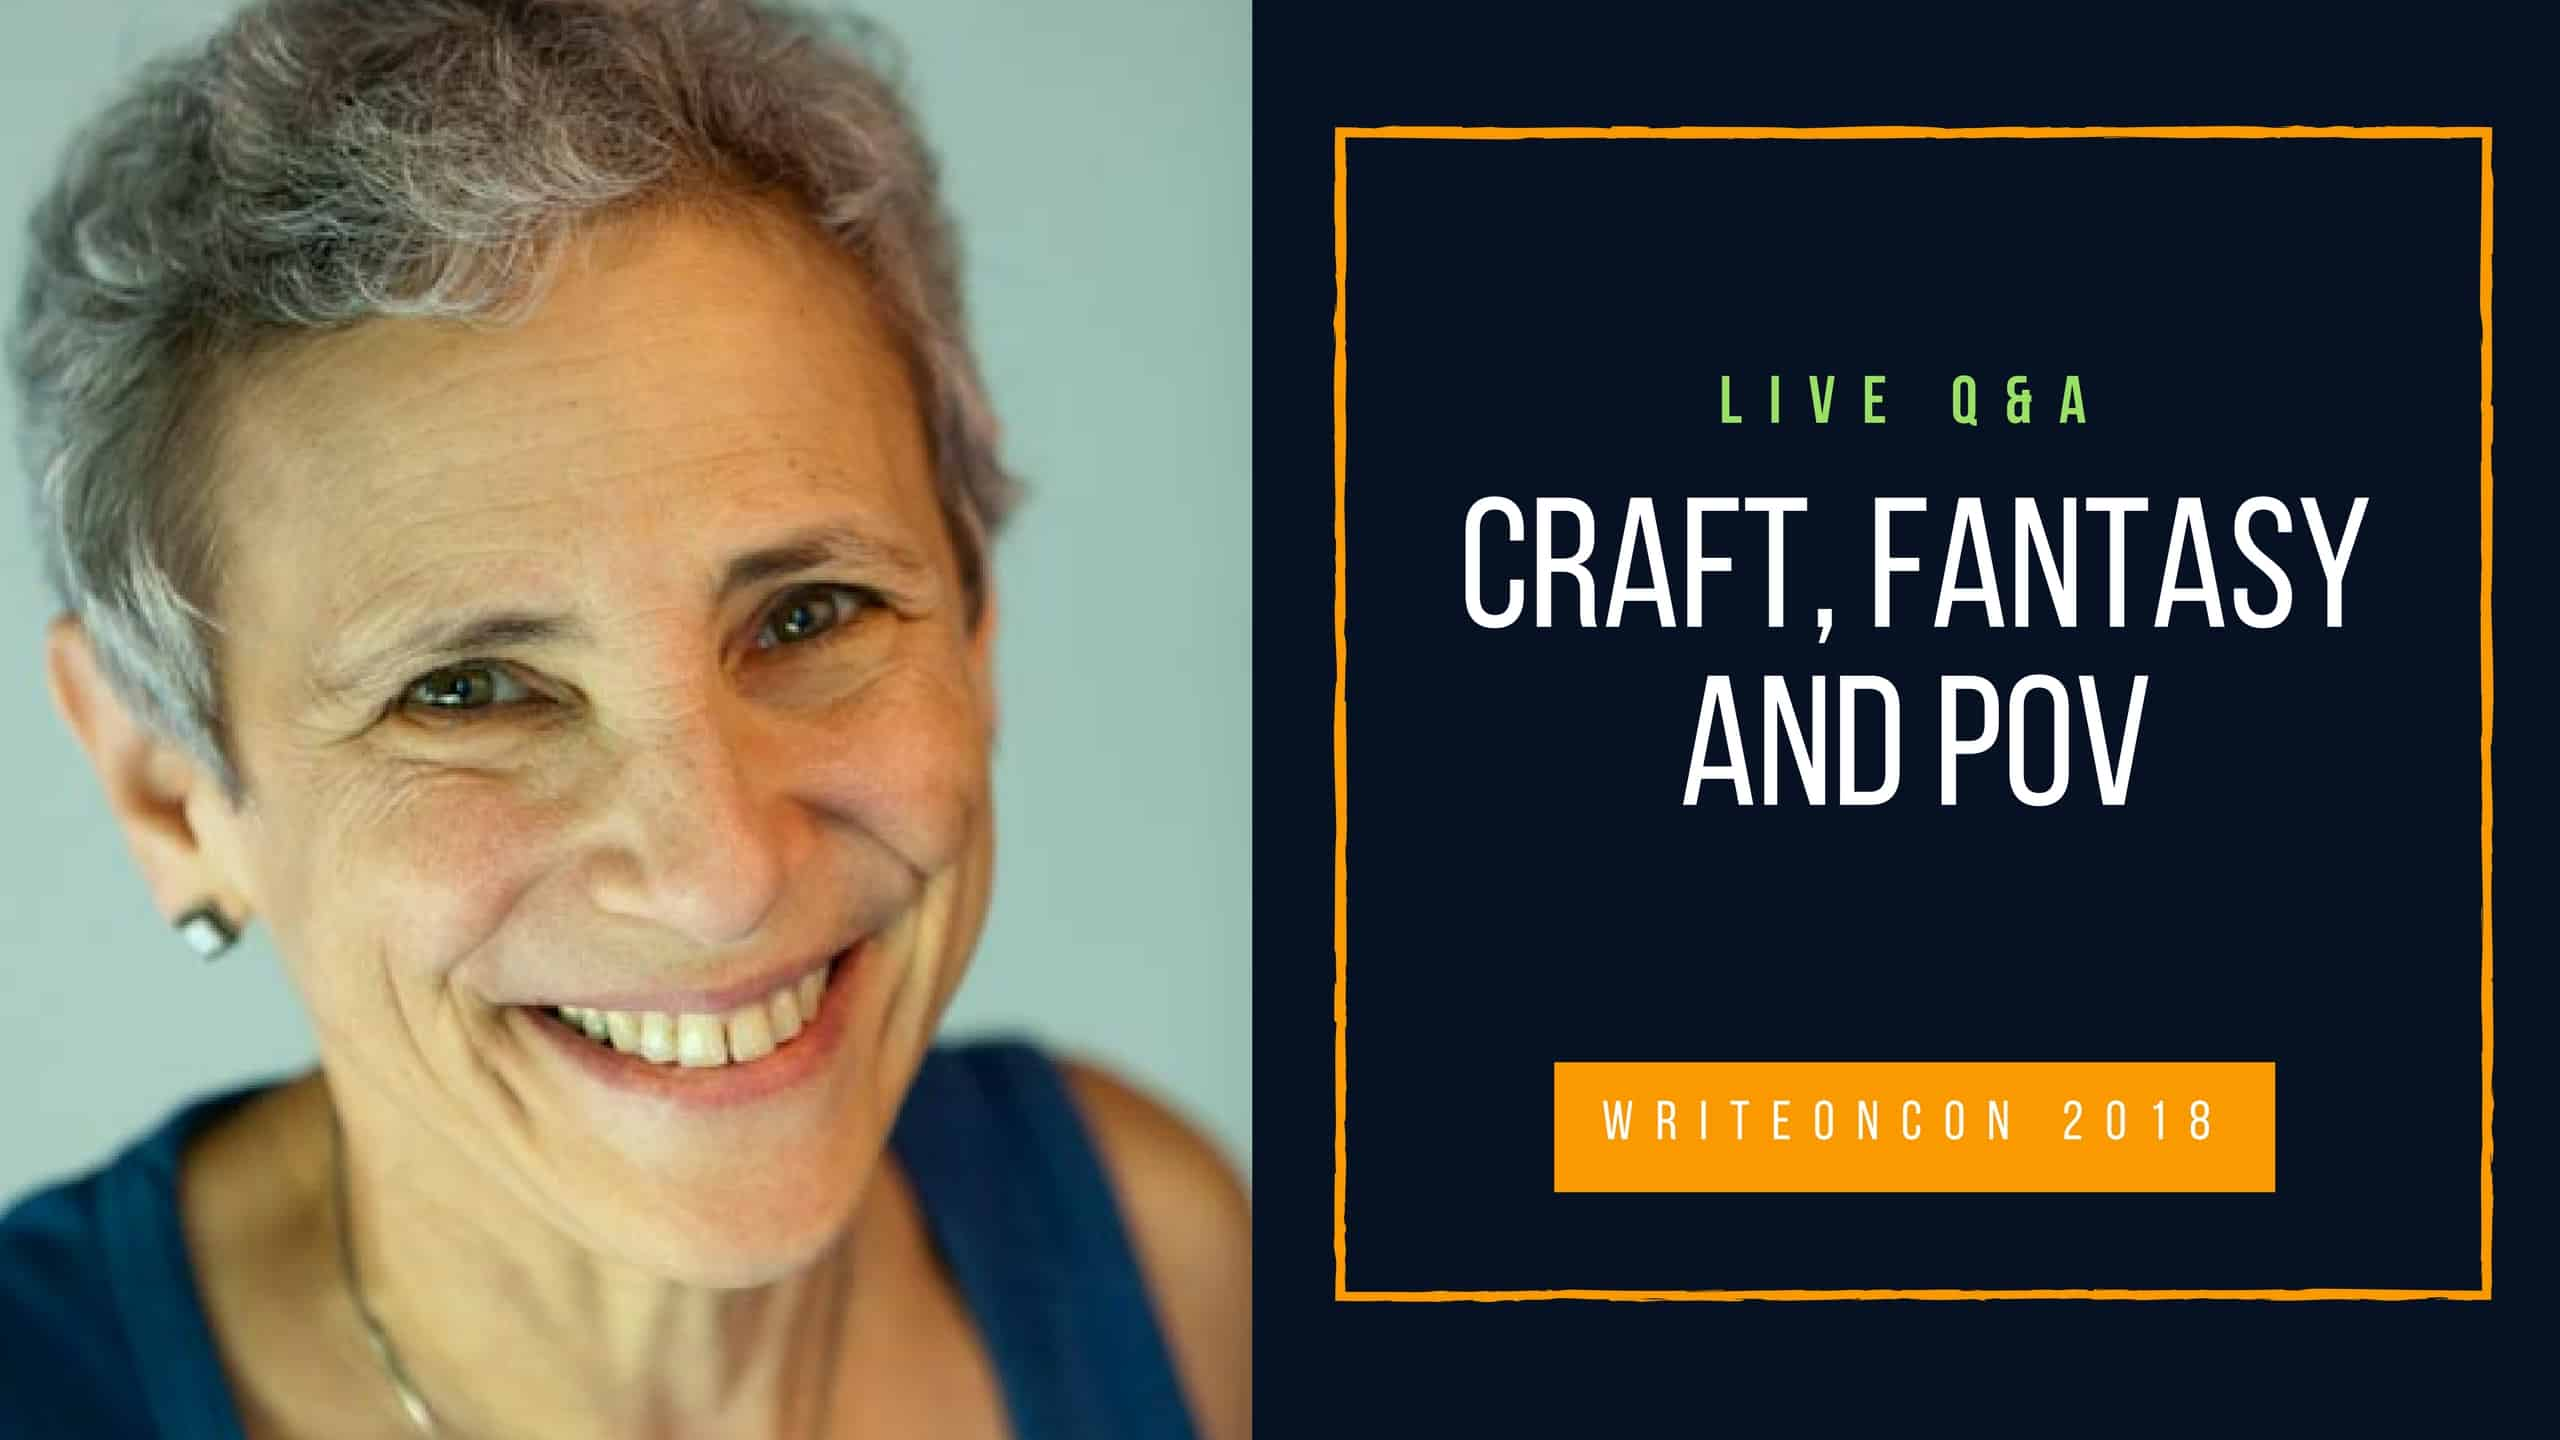 LIVE Q&A: Craft, Fantasy and POV